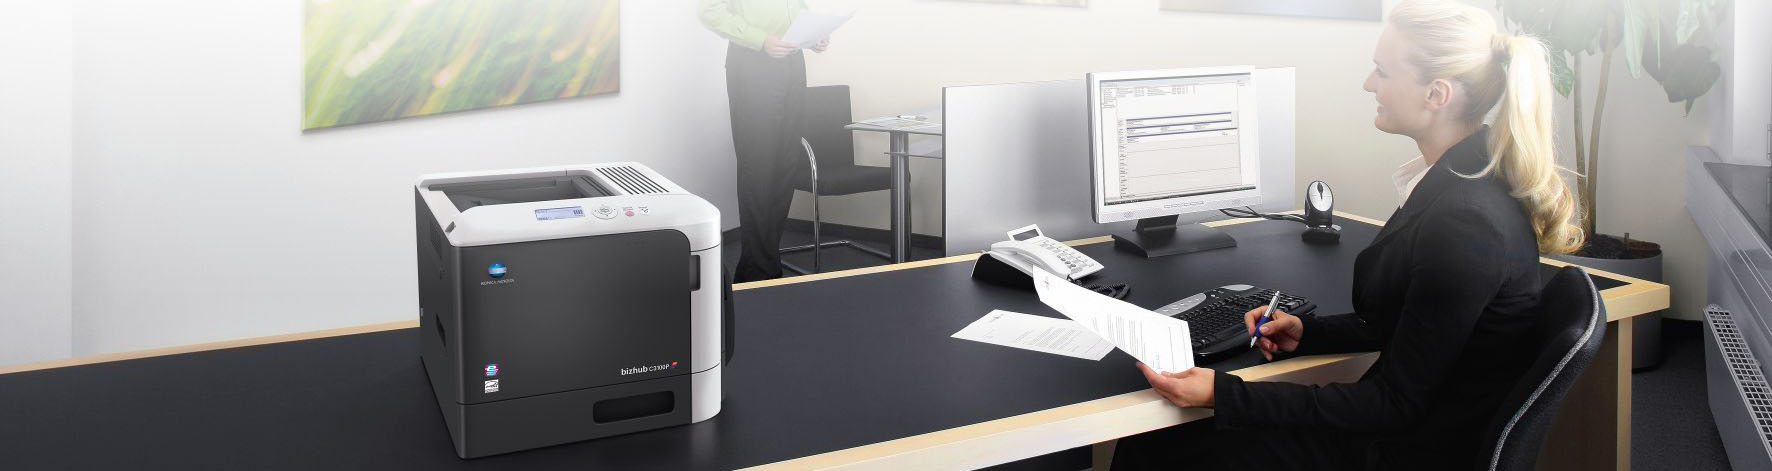 Color A4 Printer